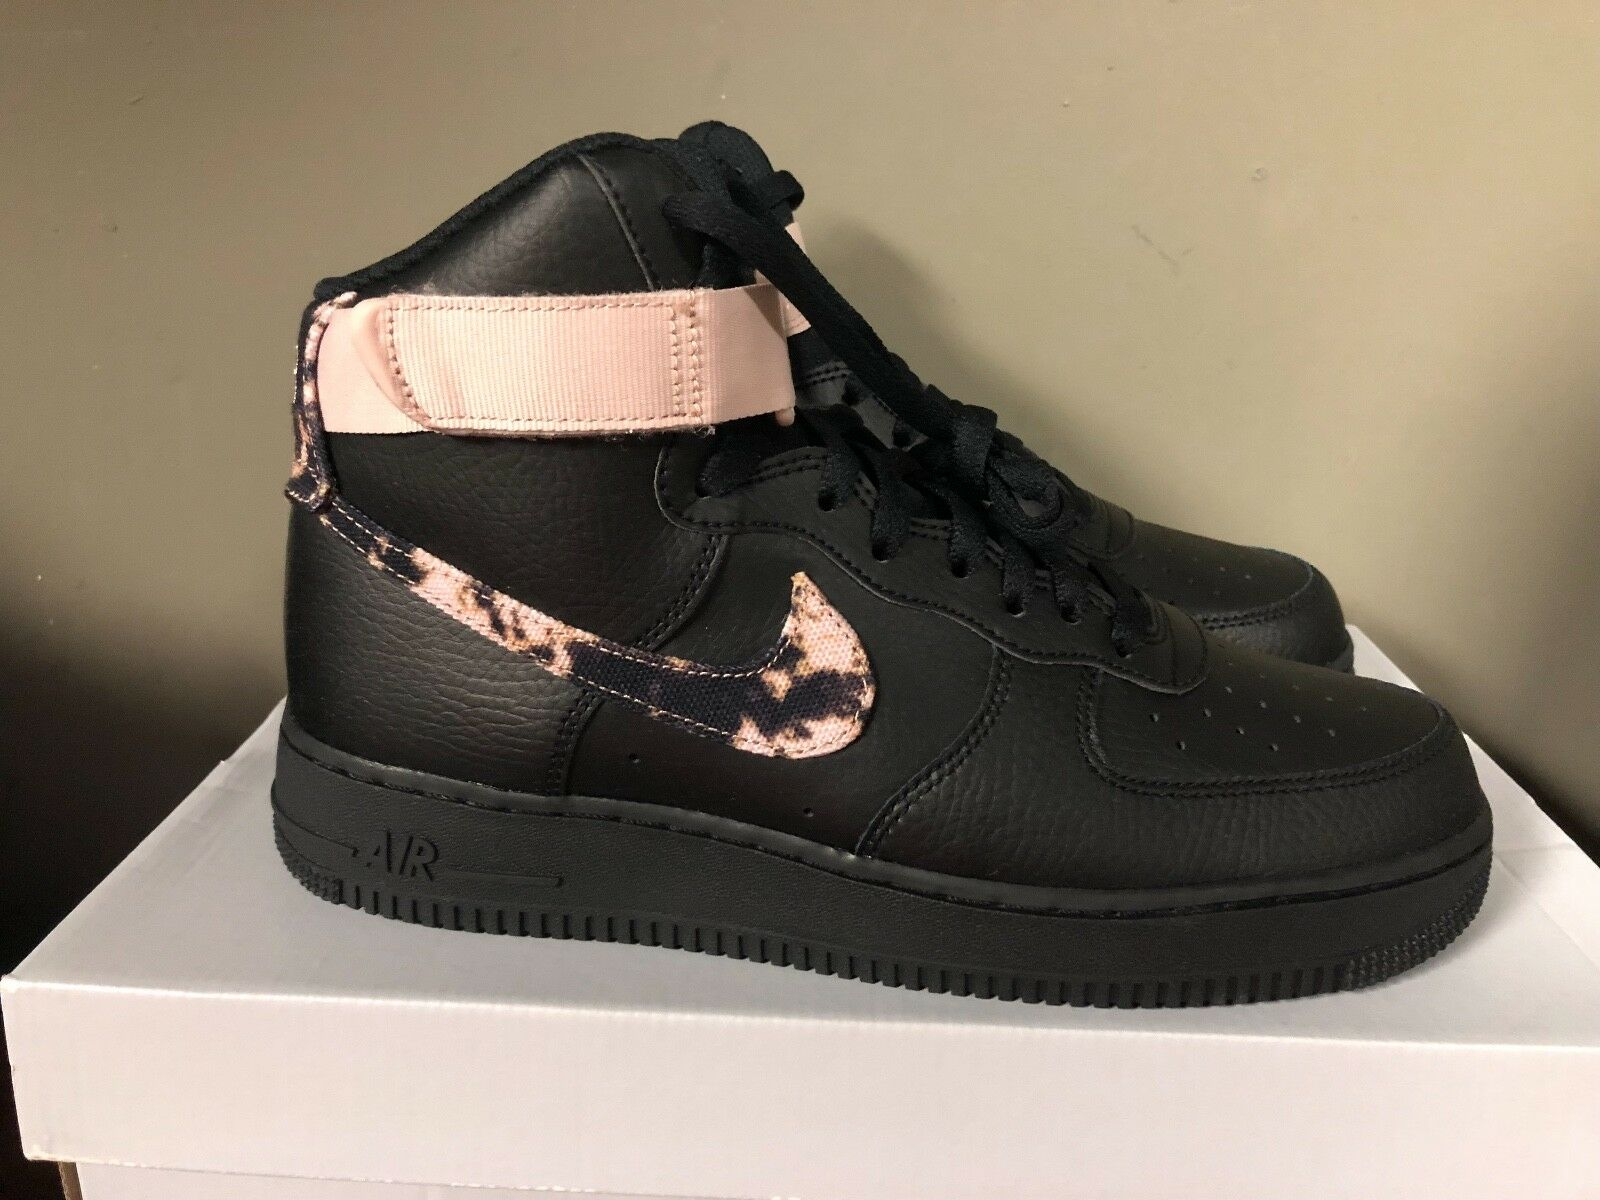 NIKE AIR FORCE 1 HIGH PRINT BLACK/WHITE-PARTICLE BEIGE AR1954-002 NEW 2018